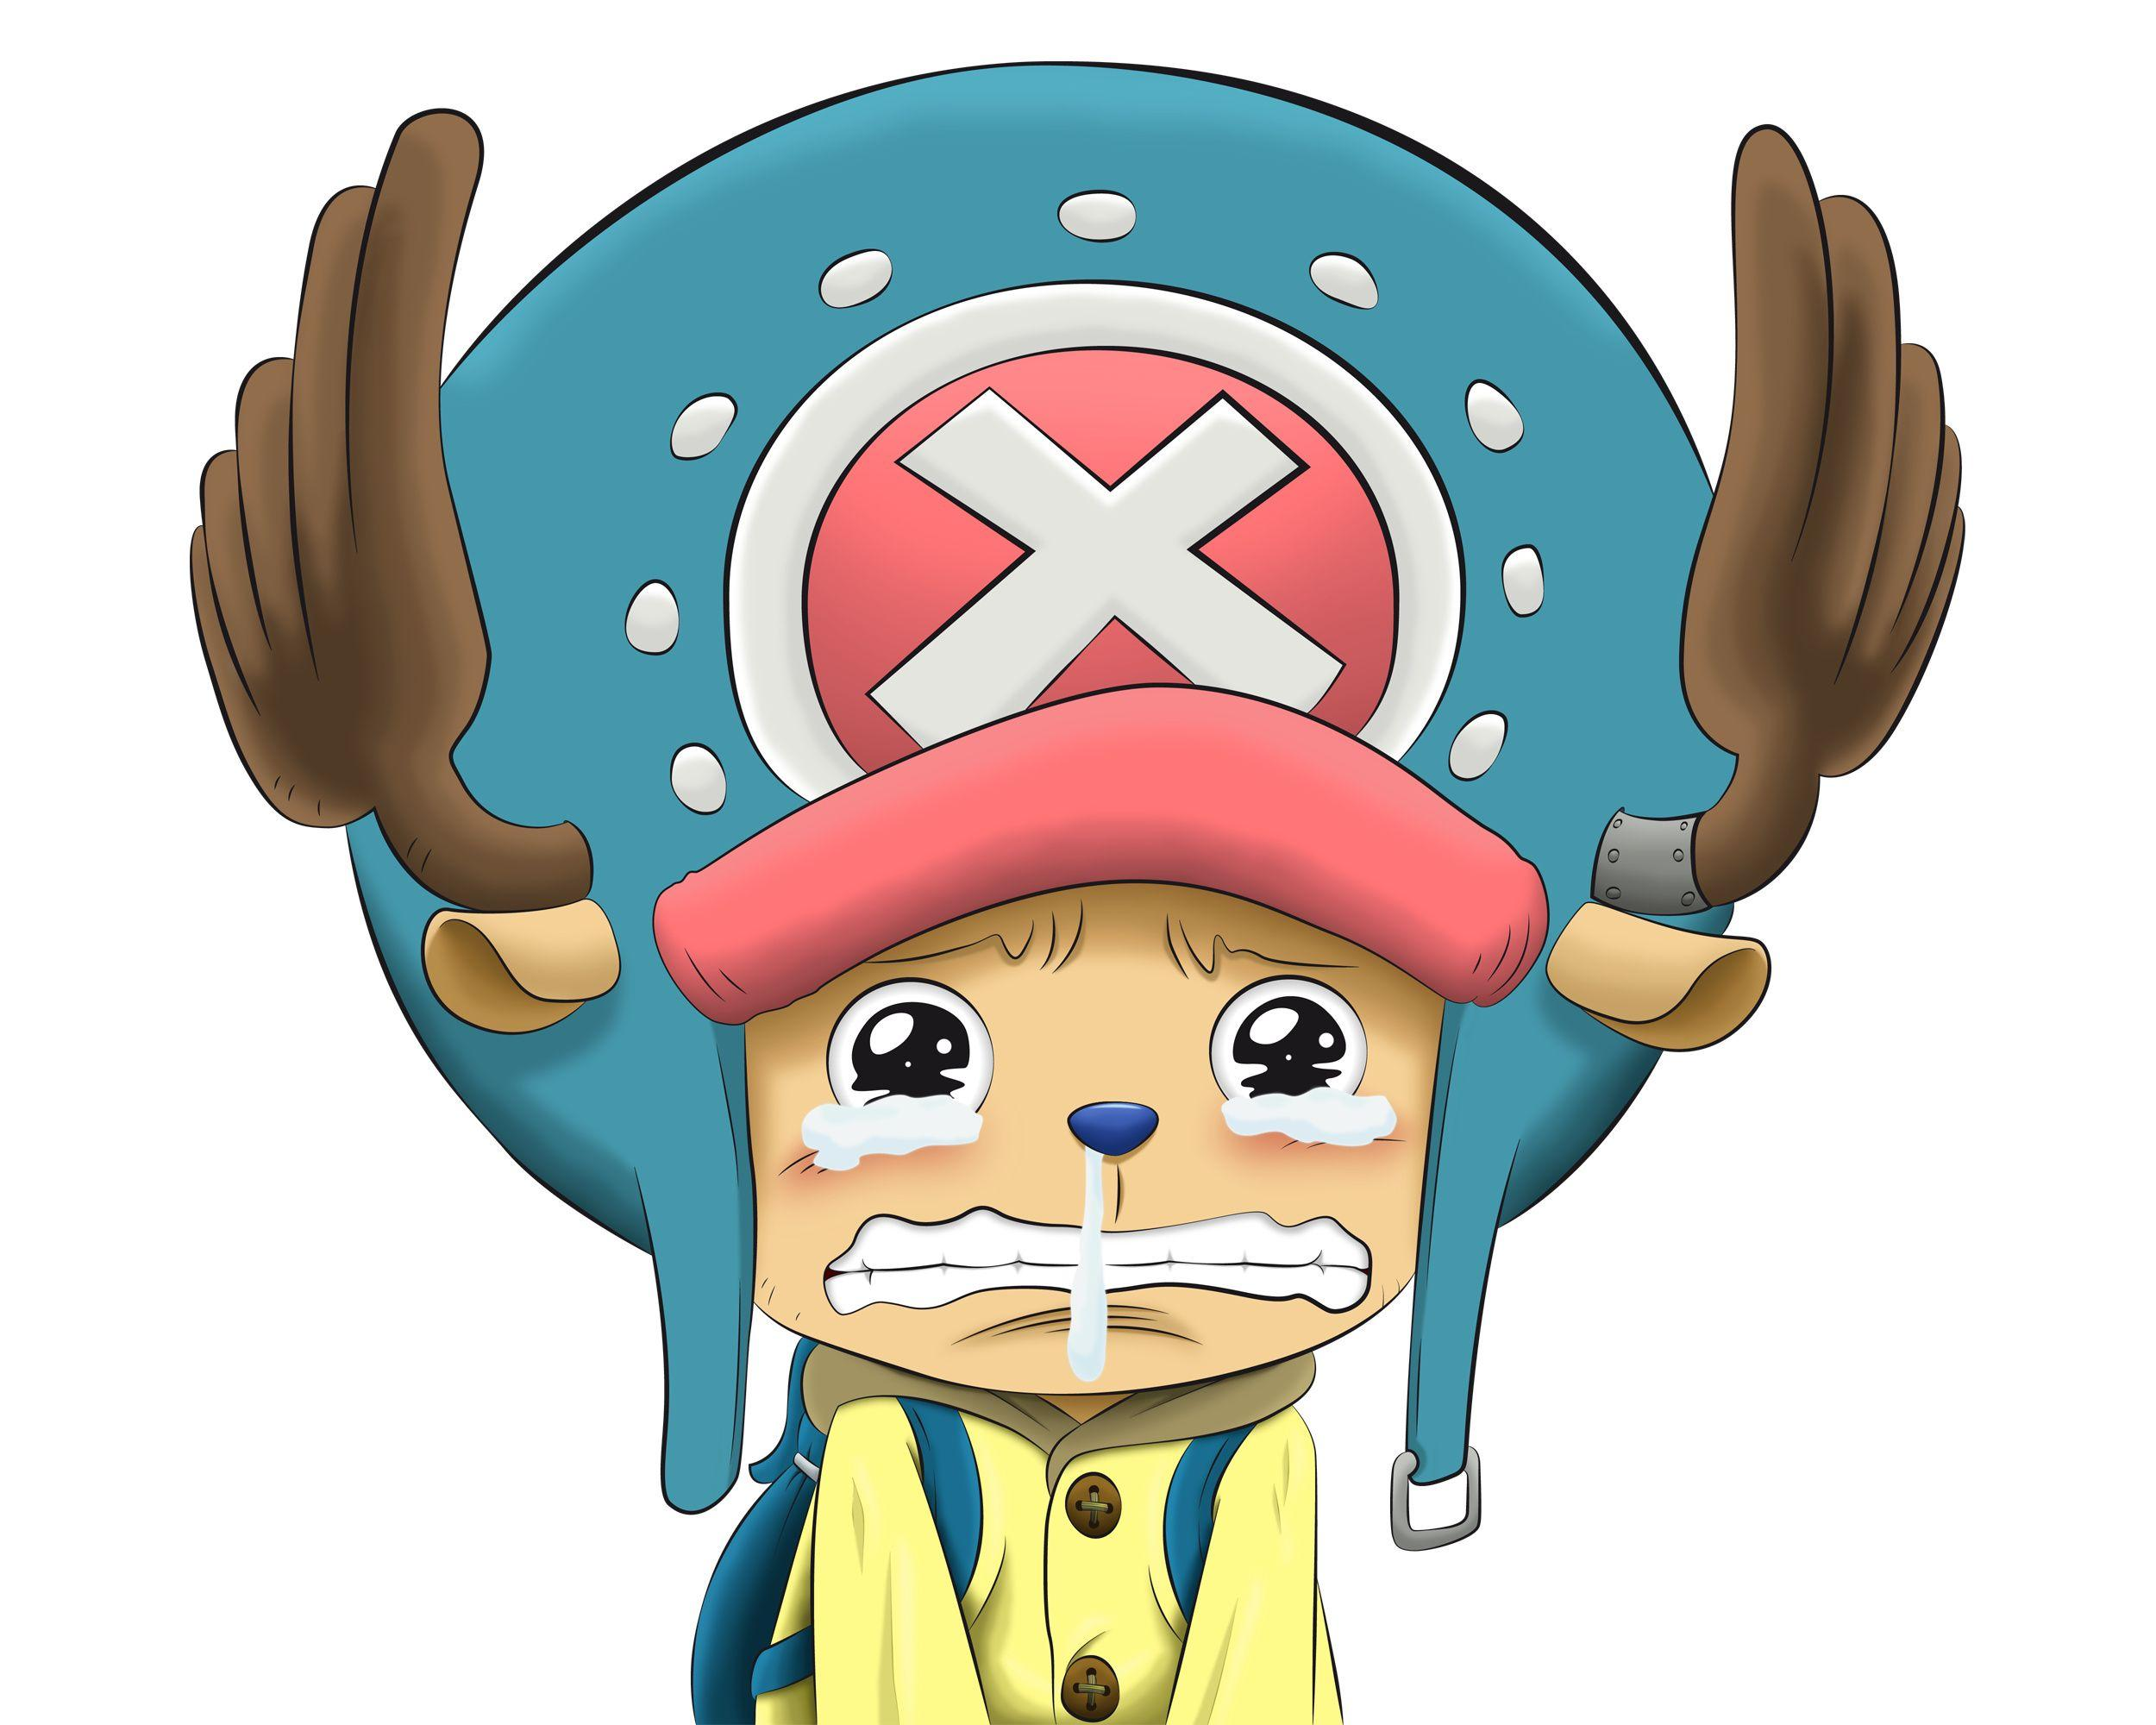 Cool Chopper One Piece Anime Wallpapers 01 Wallpapers